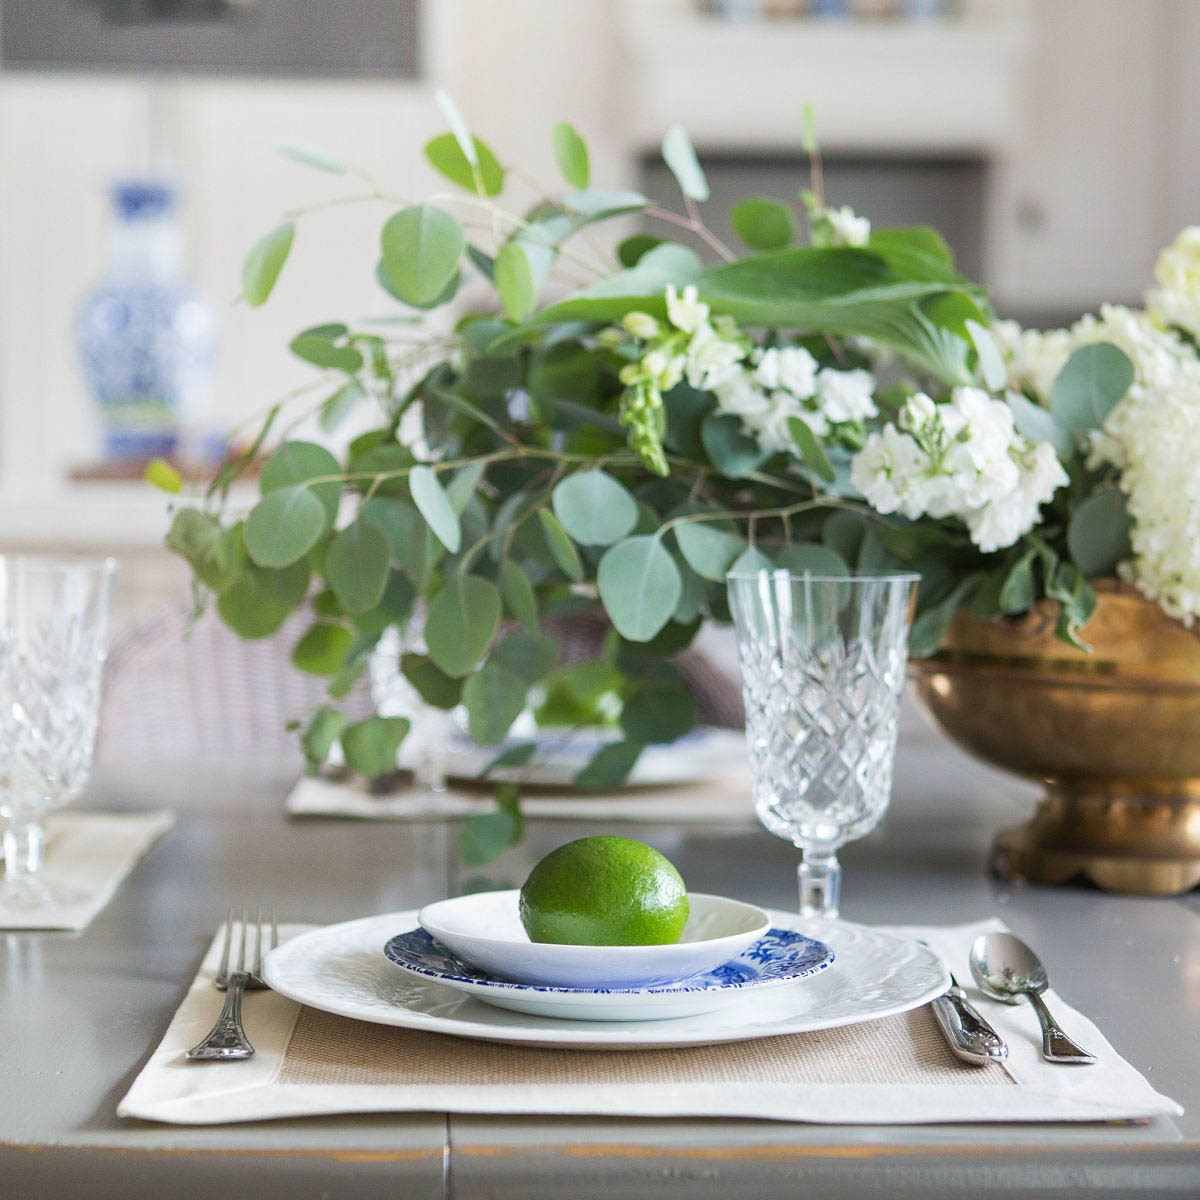 Home styling - Schedule your consultation today.